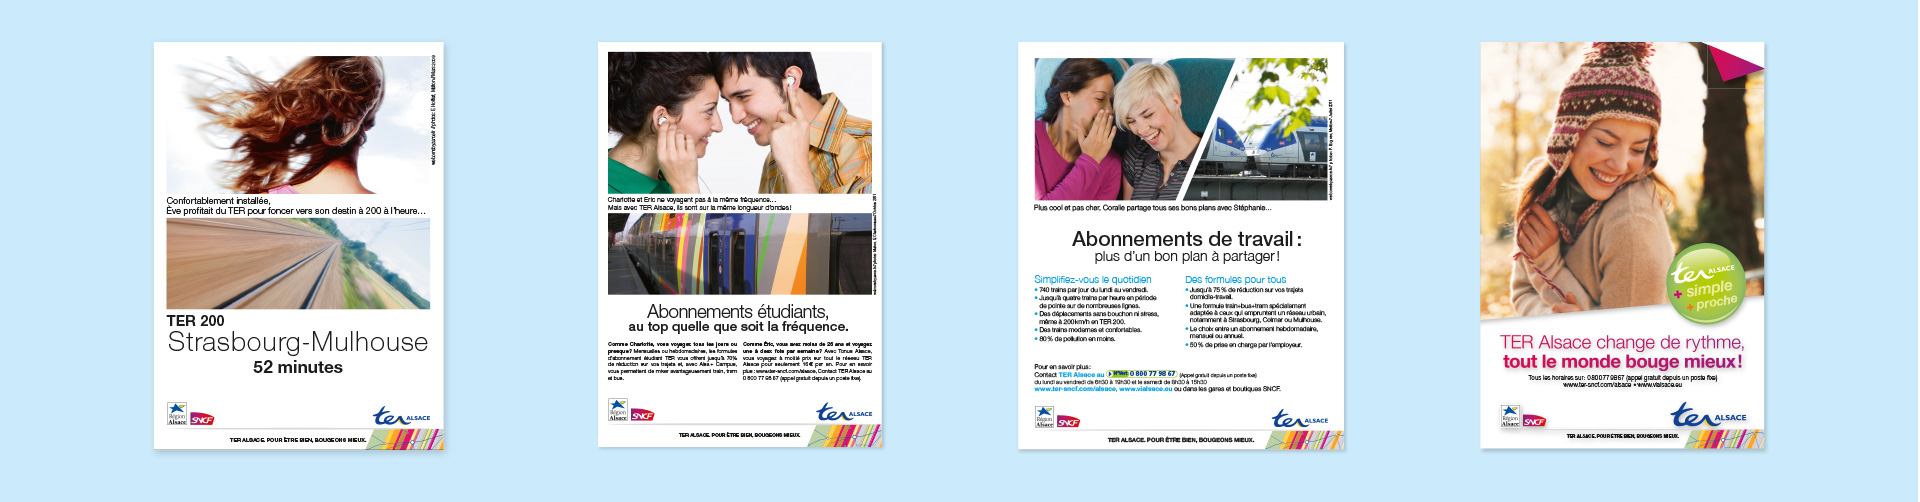 frise affiches commerciales TER